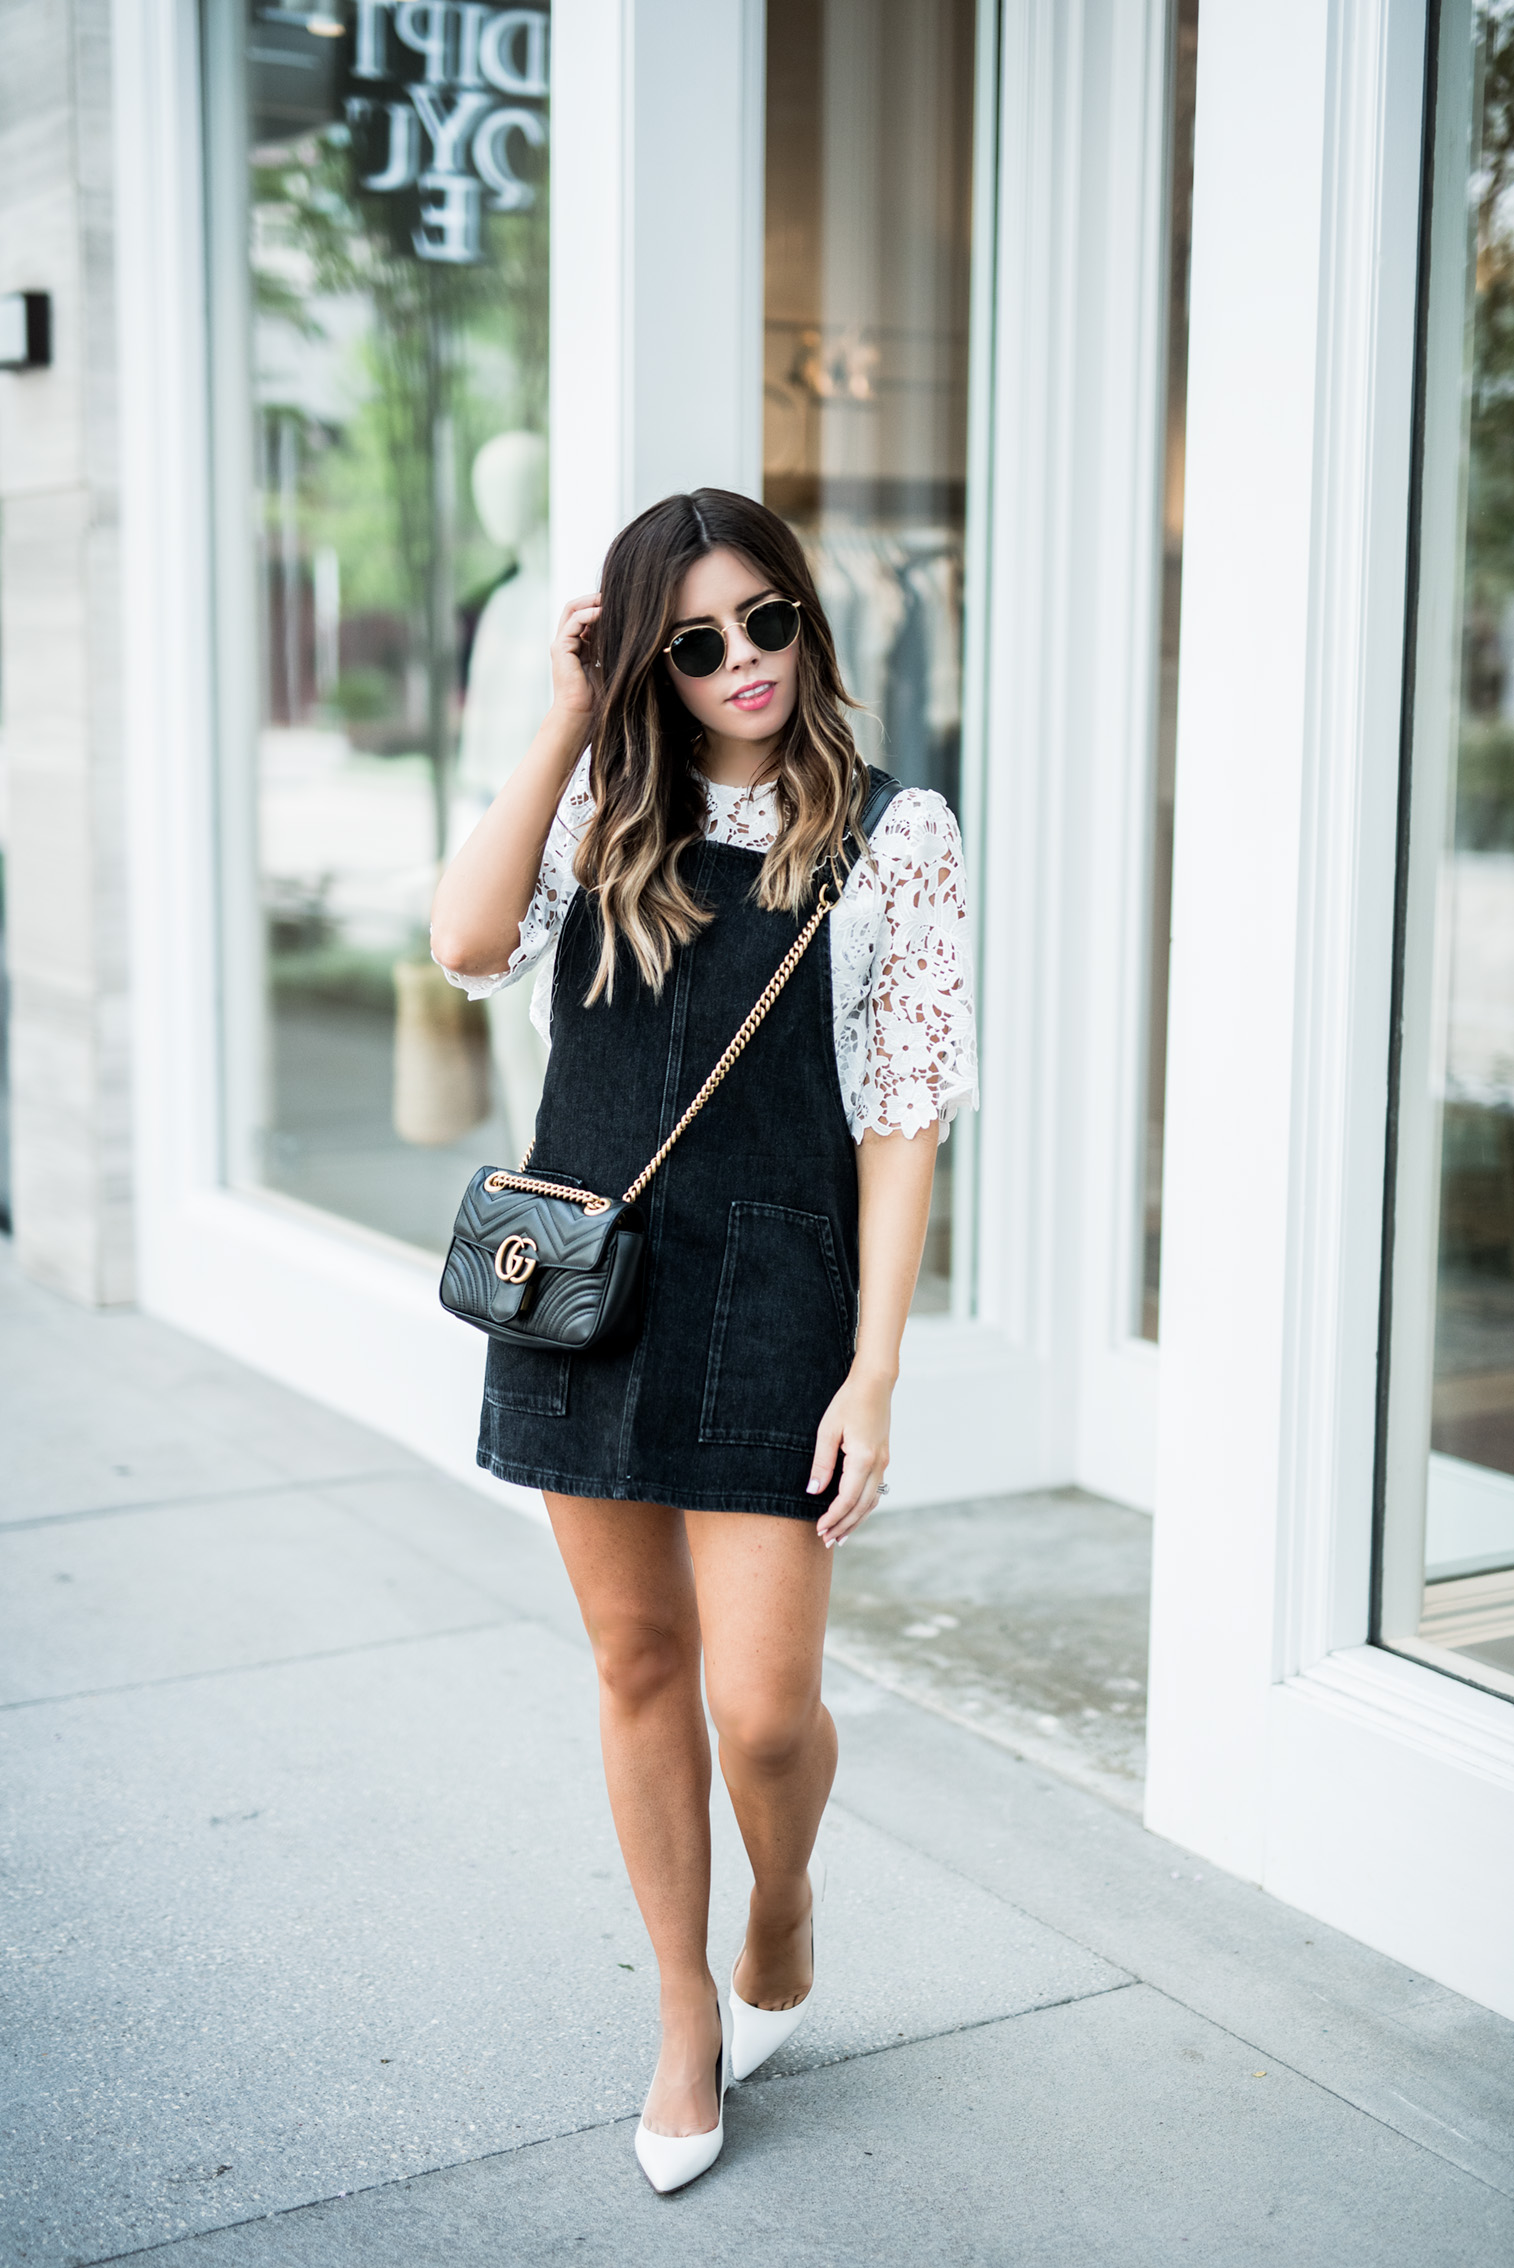 Tiffany Jais Houston fashion and lifestyle blogger | Black pinafore dress | white lace top, white pumps, Gucci marmot, street style, casual outfit ideas